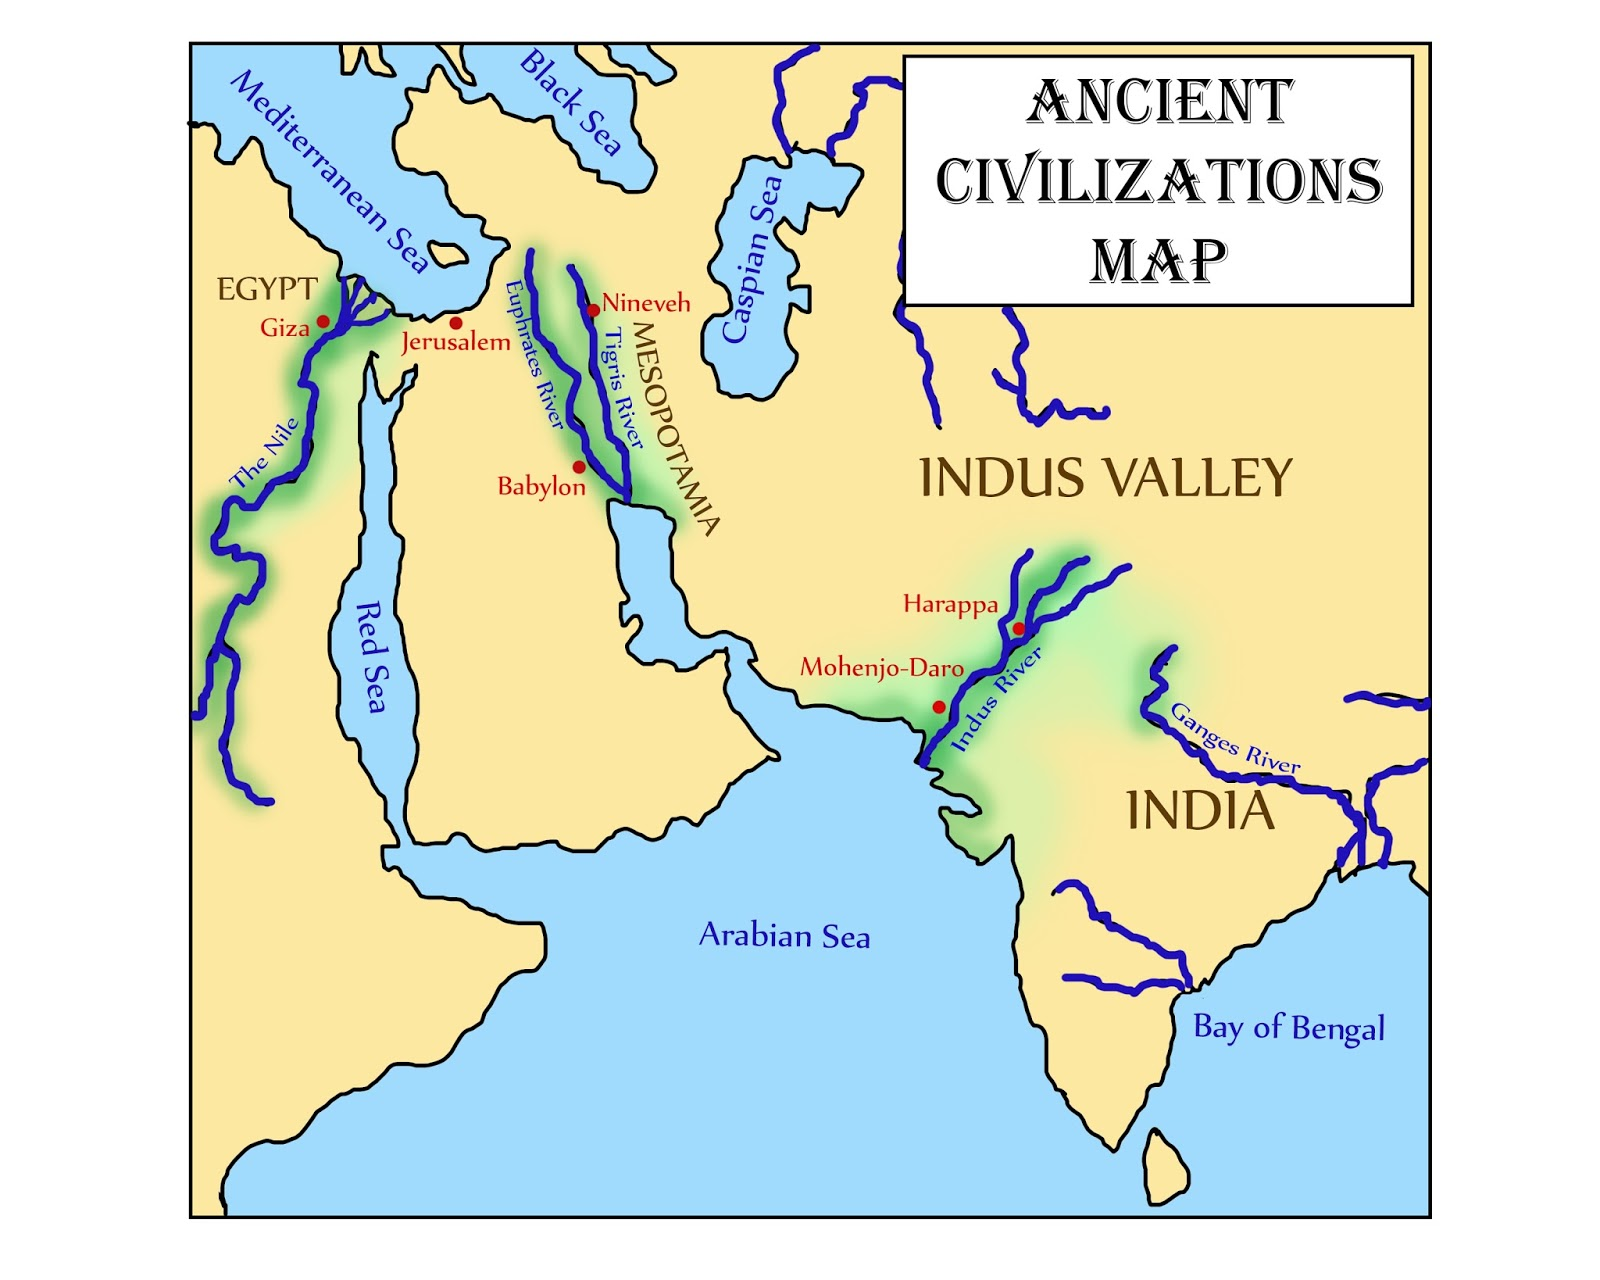 classical india and mesopotamia Ancient mesopotamia, egypt, india and china mesopotamia, egypt, india, and china are similar in that they all started as a river valley society they each originally had a polytheistic religion and a class system.